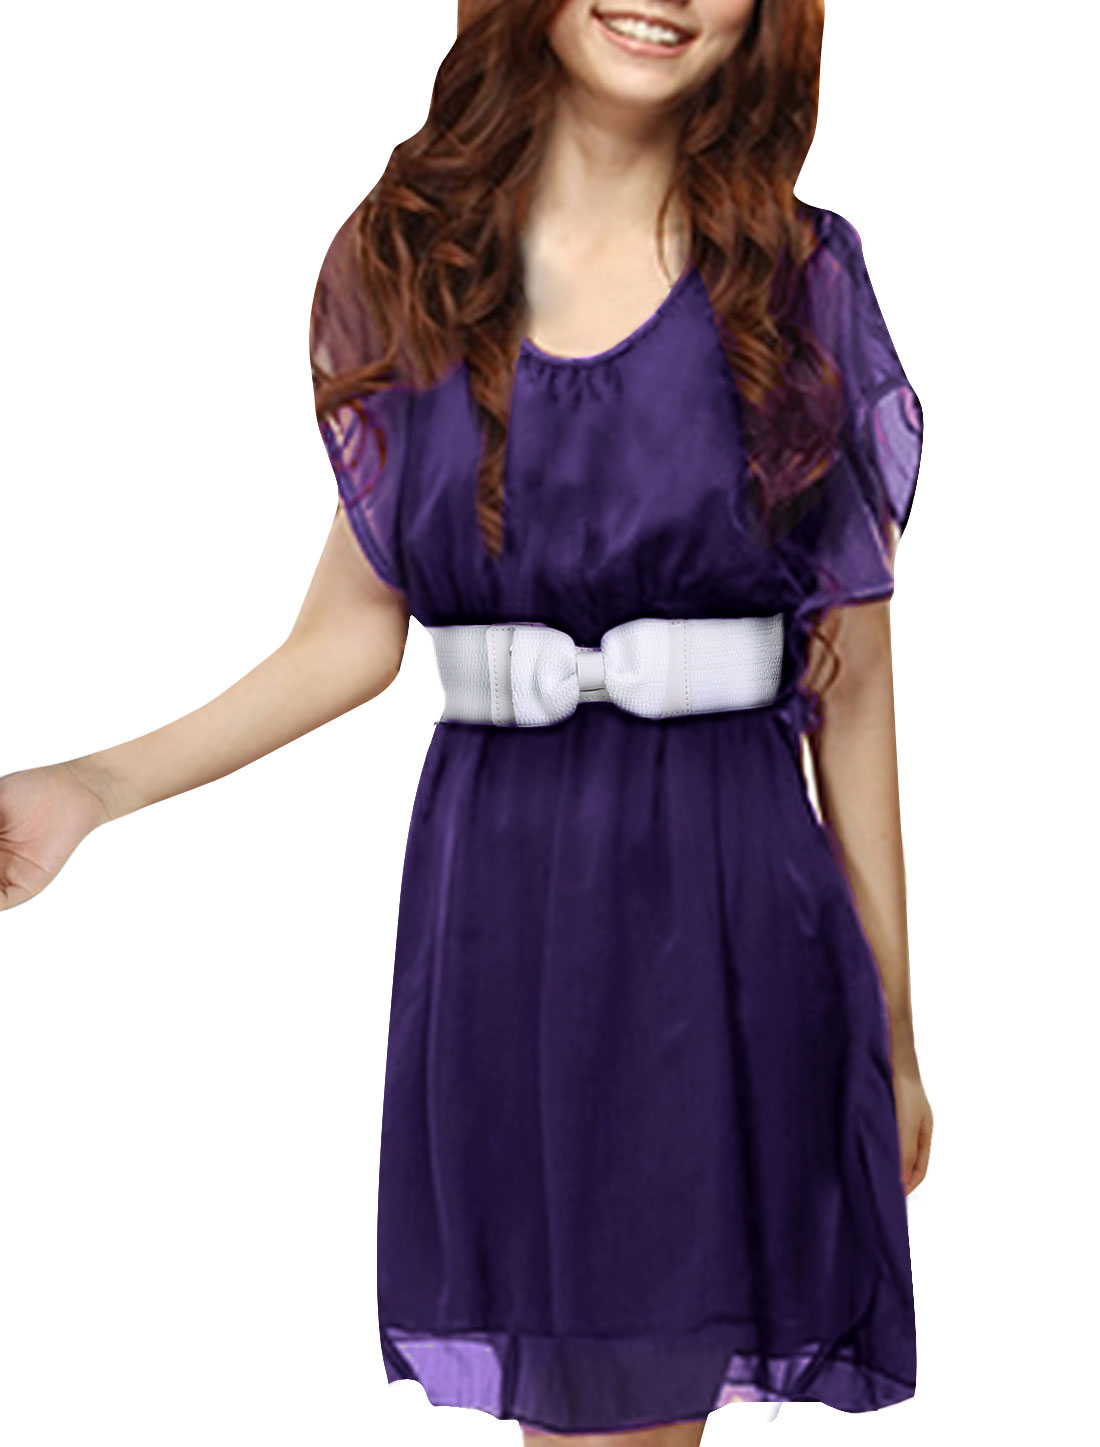 Chic Dark Purple Color Elastic Waist Above Knee Dress w Belt S for Lady